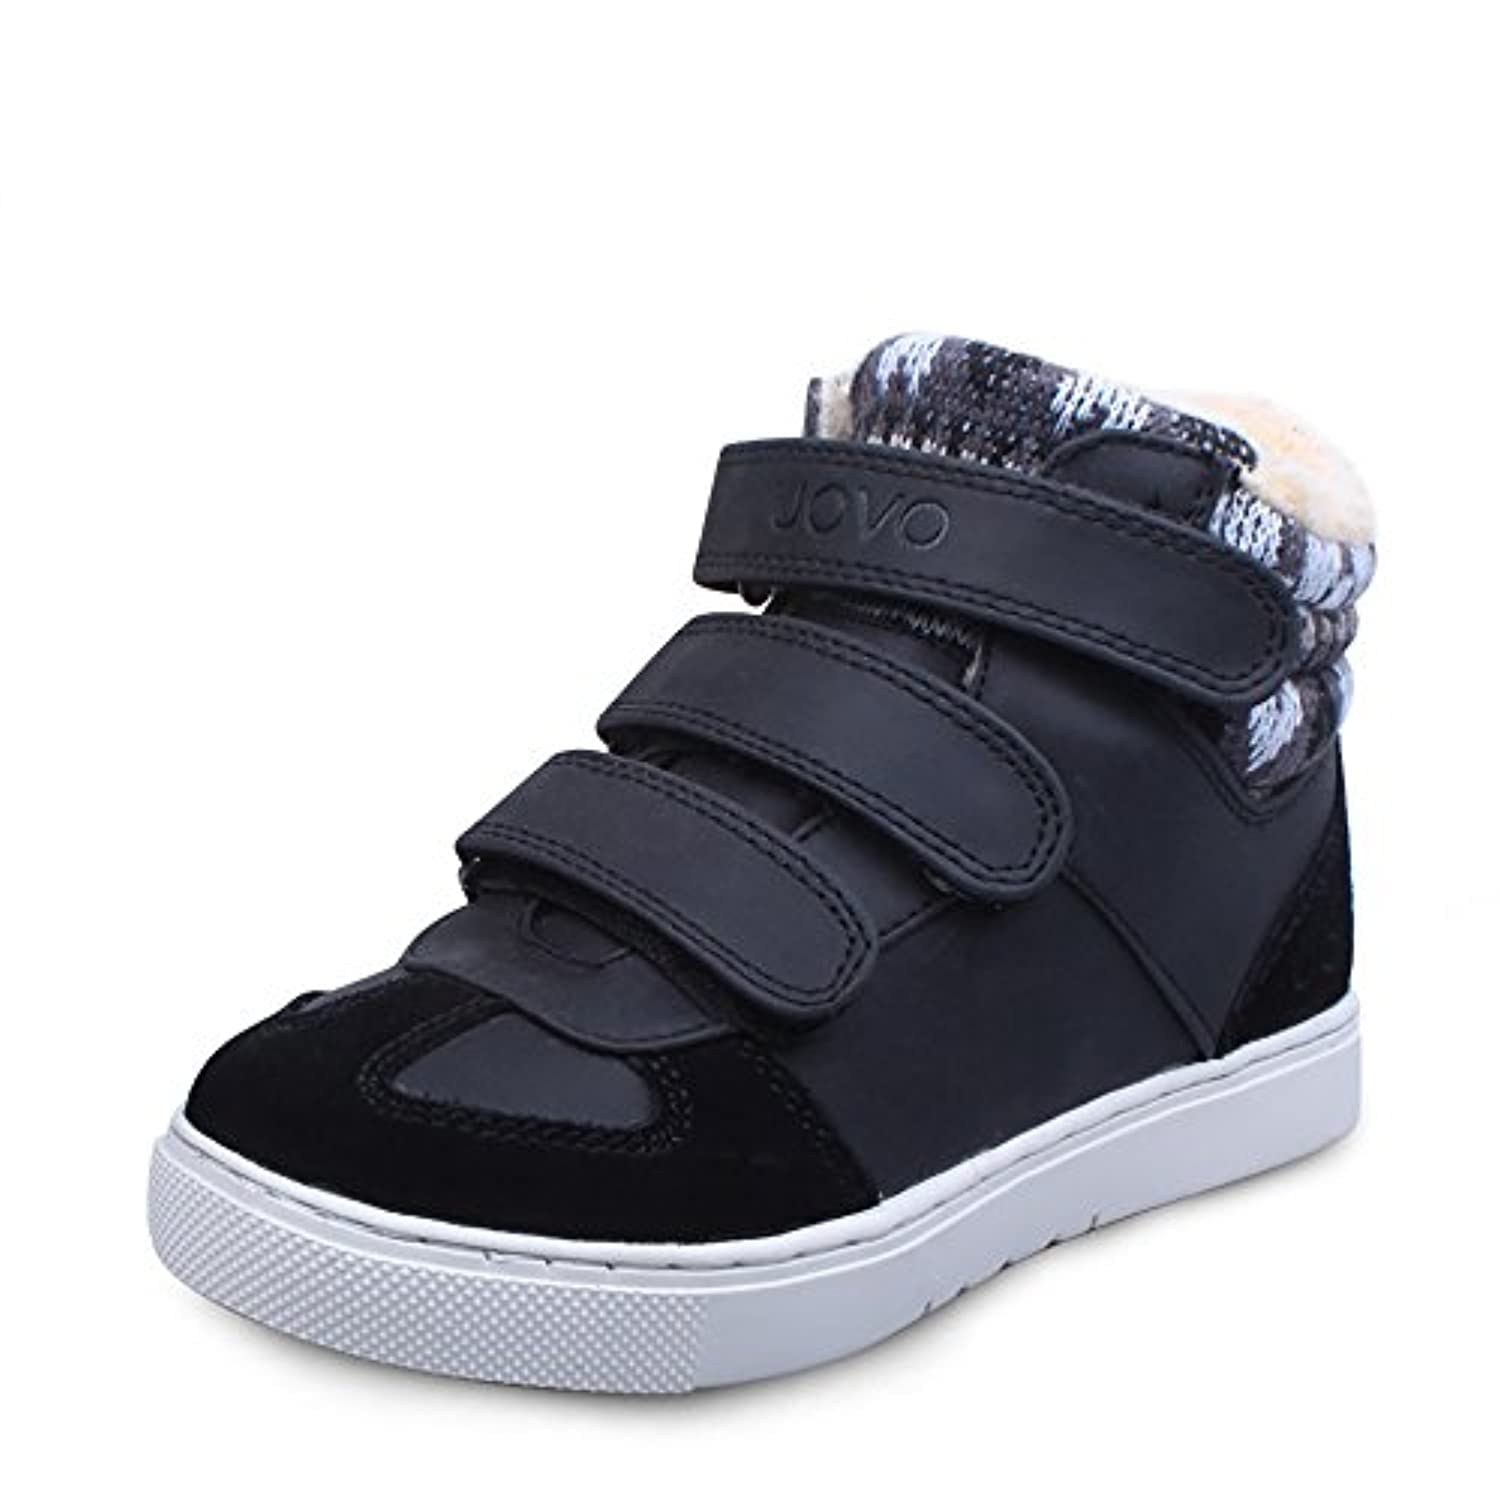 UOVO Casual High-top Shoes With 3 Velcros for Kids Boys Girls (UK Size 1/EU 33/US Size 2, Black Brown)